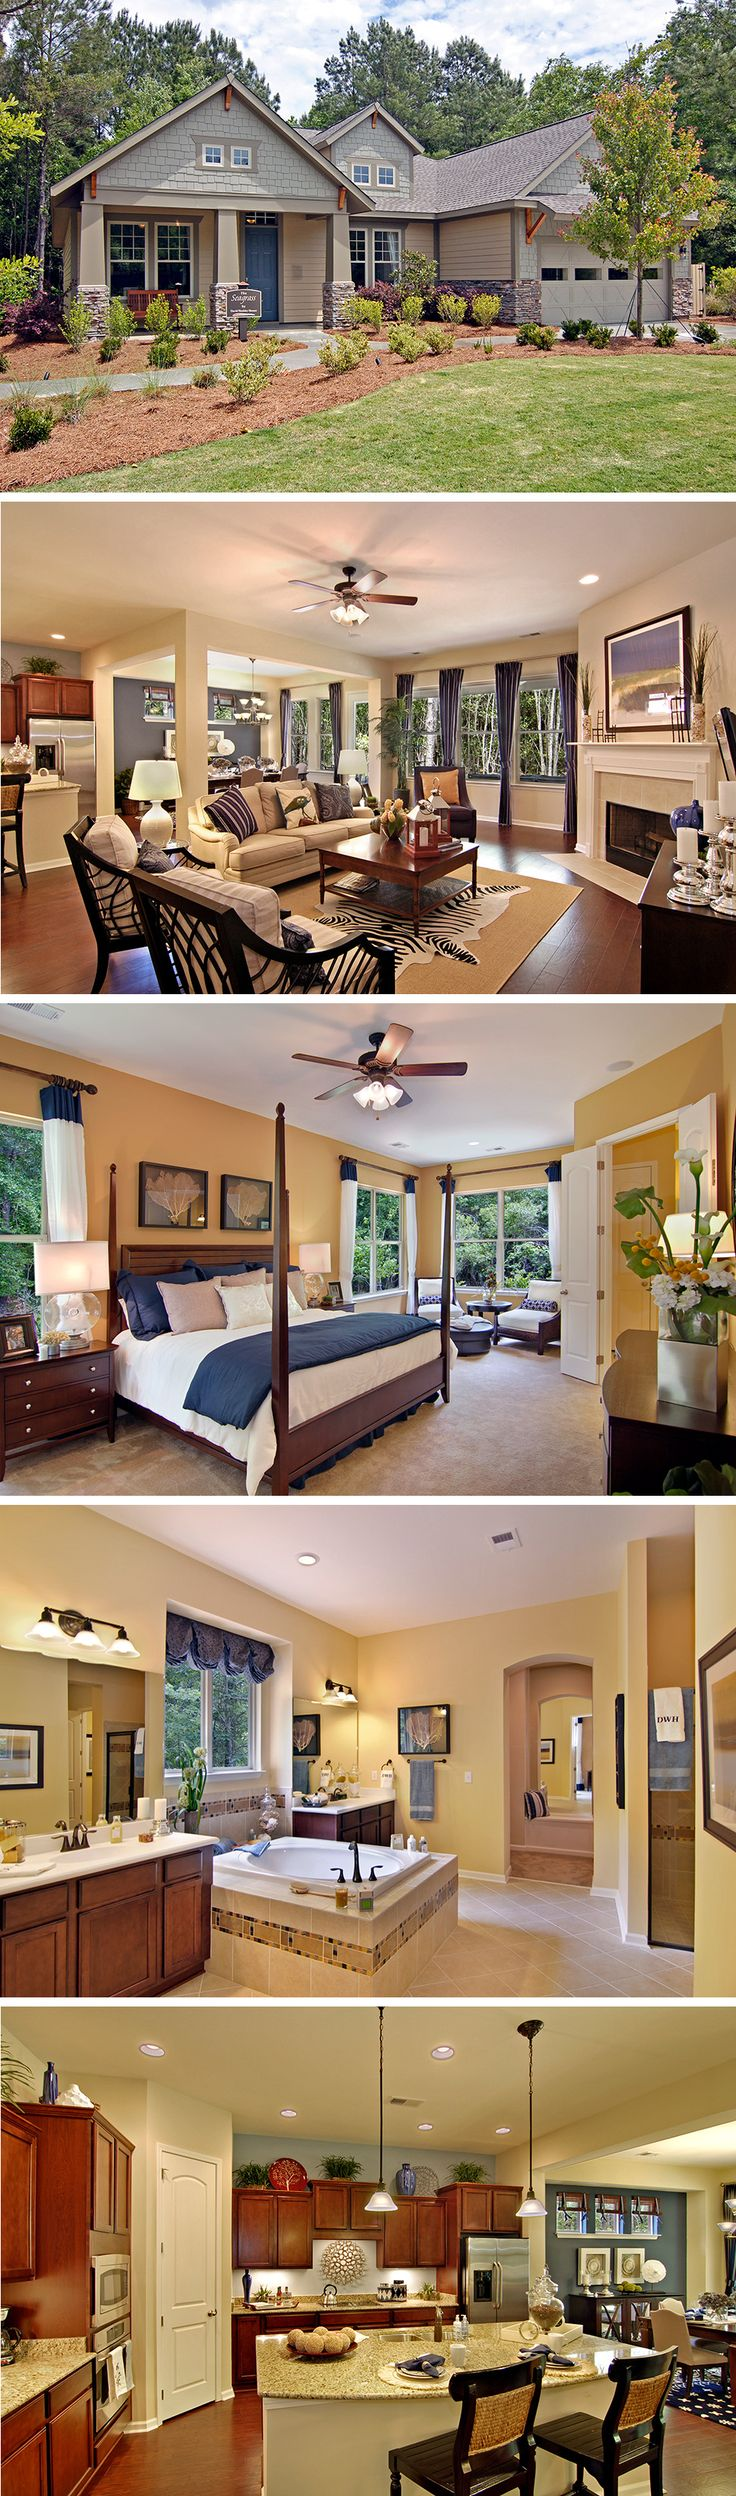 best 25+ custom home designs ideas only on pinterest | open home